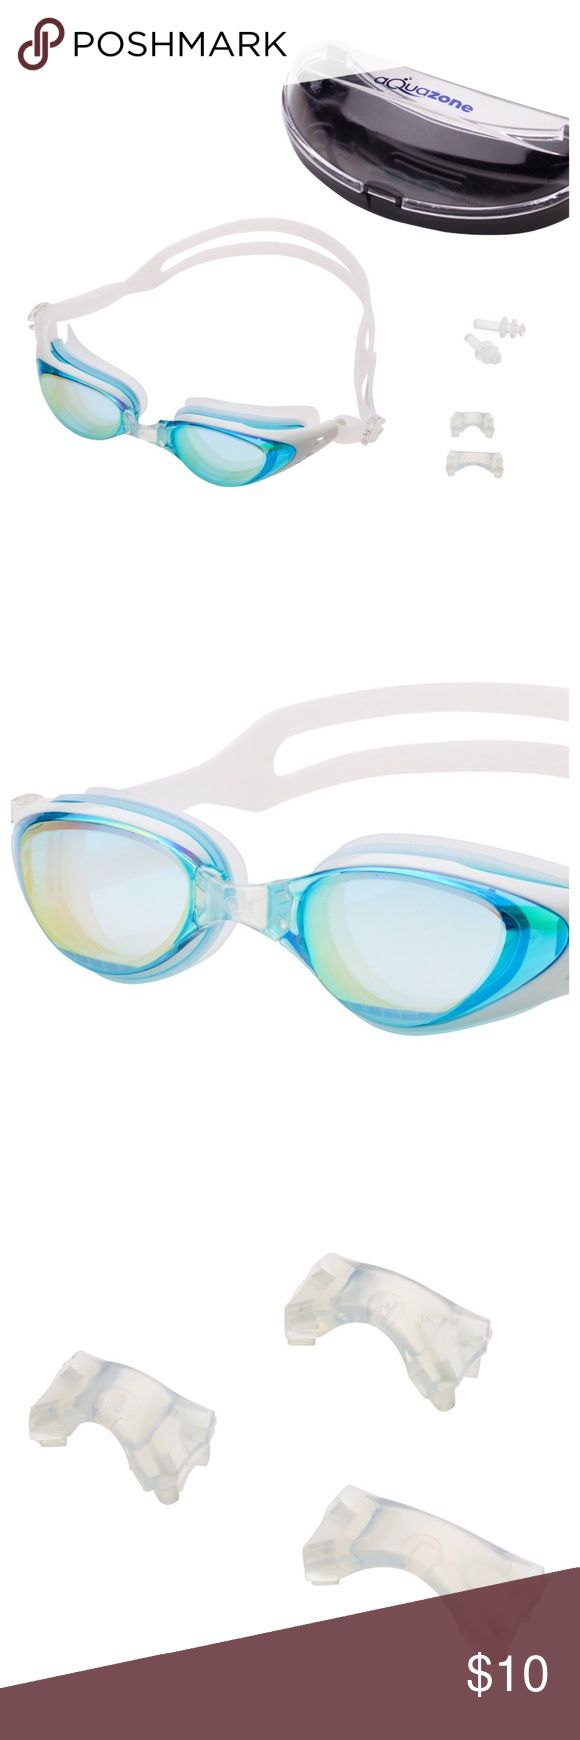 AQUAZONE PRO SWIMMING GOGGLES SET Aquazone Adjustable Swimming Goggles (Lifetime Replacement Guarantee) Premium UV Protection-Shatter Resistant-Anti Fog Swim Goggles. FIT AND COMFORT adjustable goggles feature plastic eye cups with a soft silicone seal around each eye. Every pair comes with small, medium and large nose bridges and an adjustable strap. WATER TIGHT WITH SHATTER RESISTANT MIRRORED LENSES. PROTECTIVE CASE  & EAR PLUGS INCLUDED. ENJOY! Aquazone Accessories Glasses